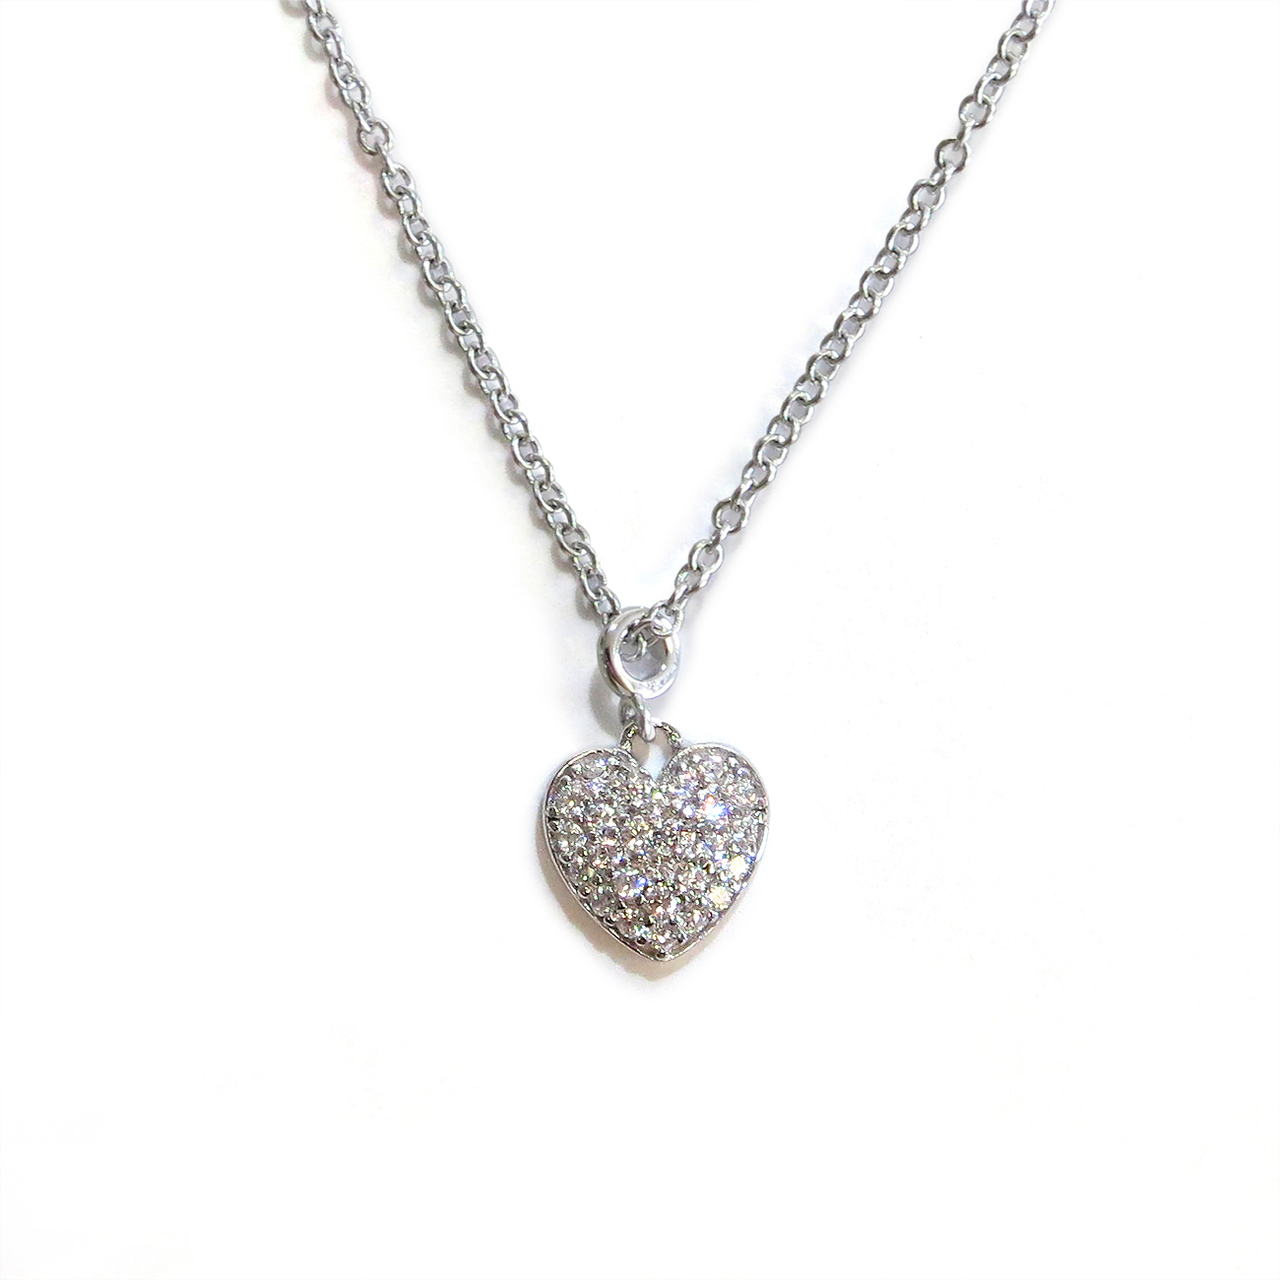 bead bonas heart jewellery necklace oliver silver